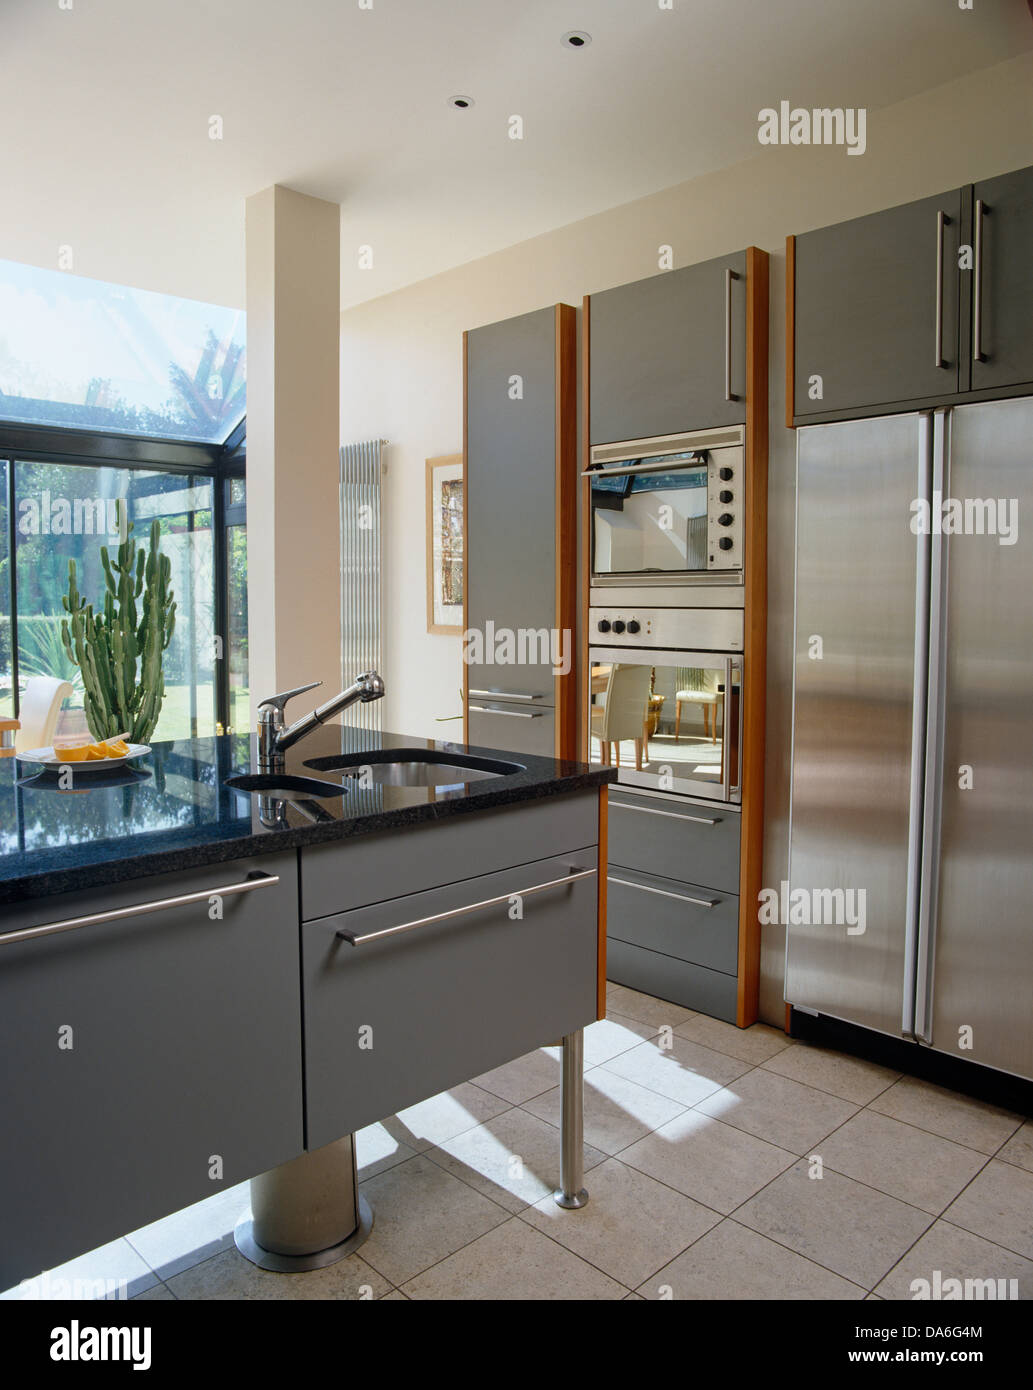 Sink Set In Central Island Unit In Contemporary Kitchen With